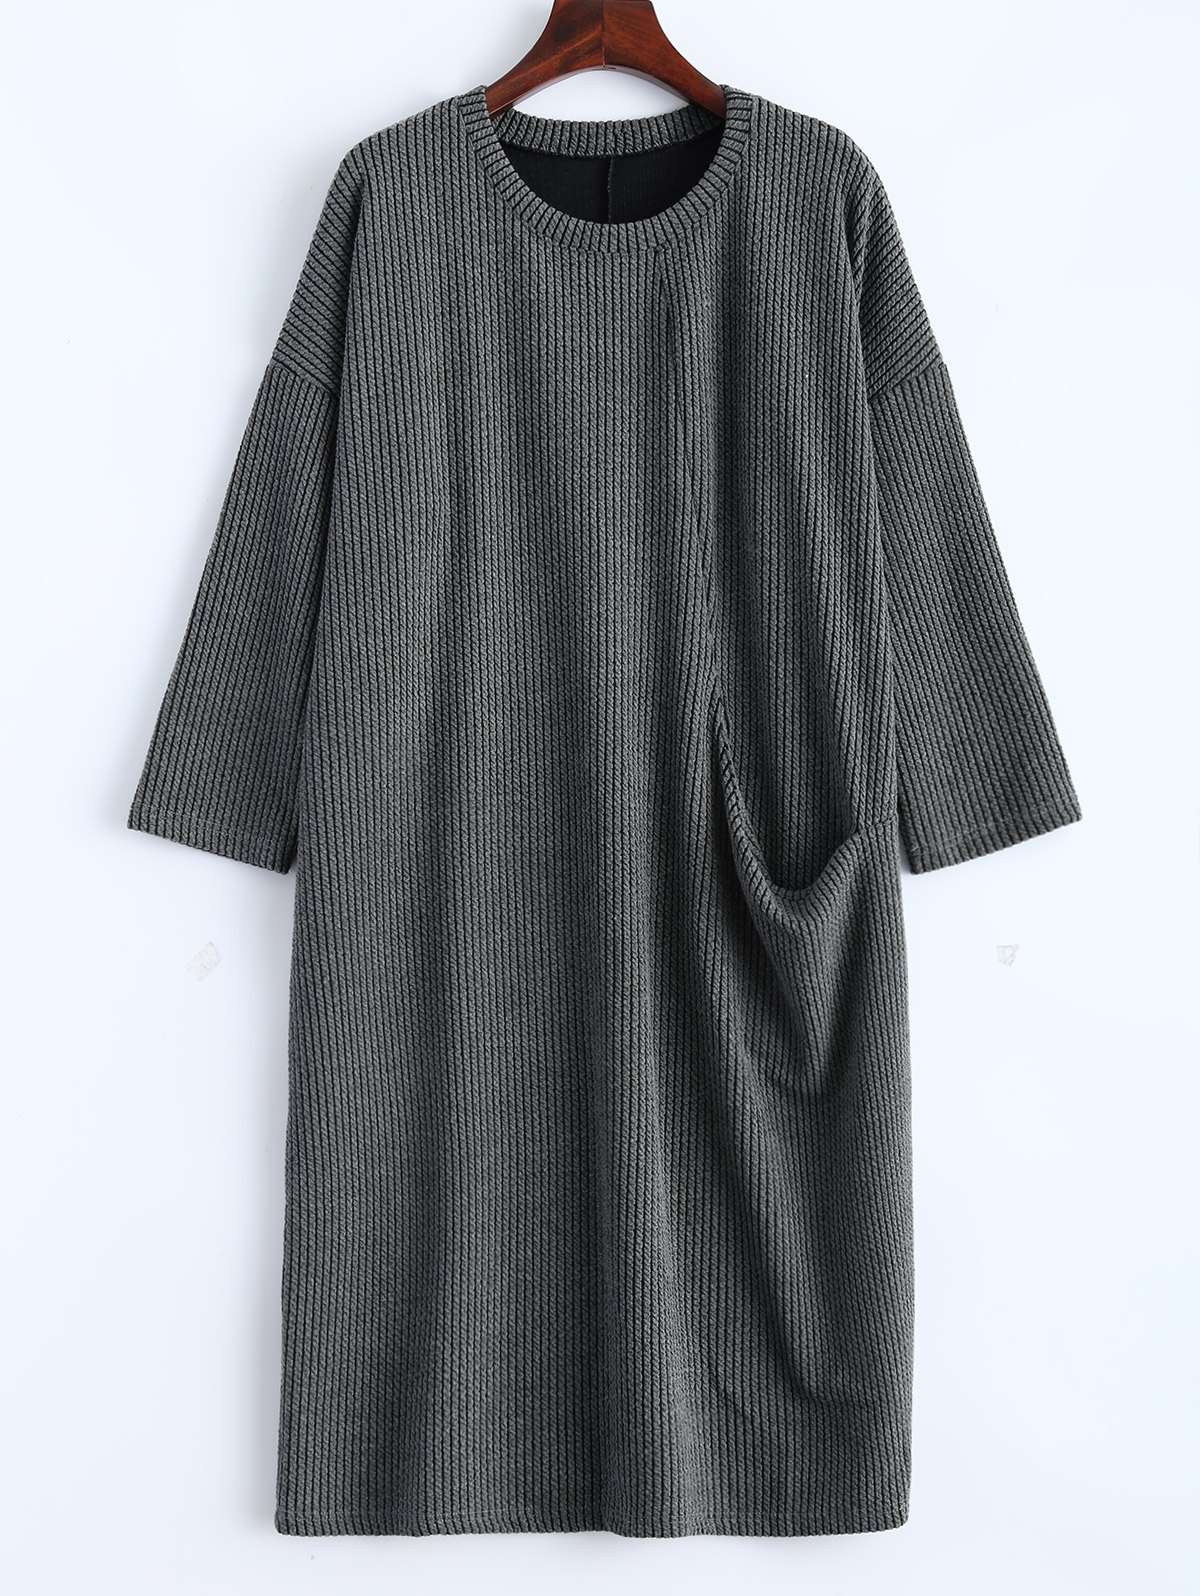 Chic Drop Shoulder Ribbed Jumper Dress with Pockets